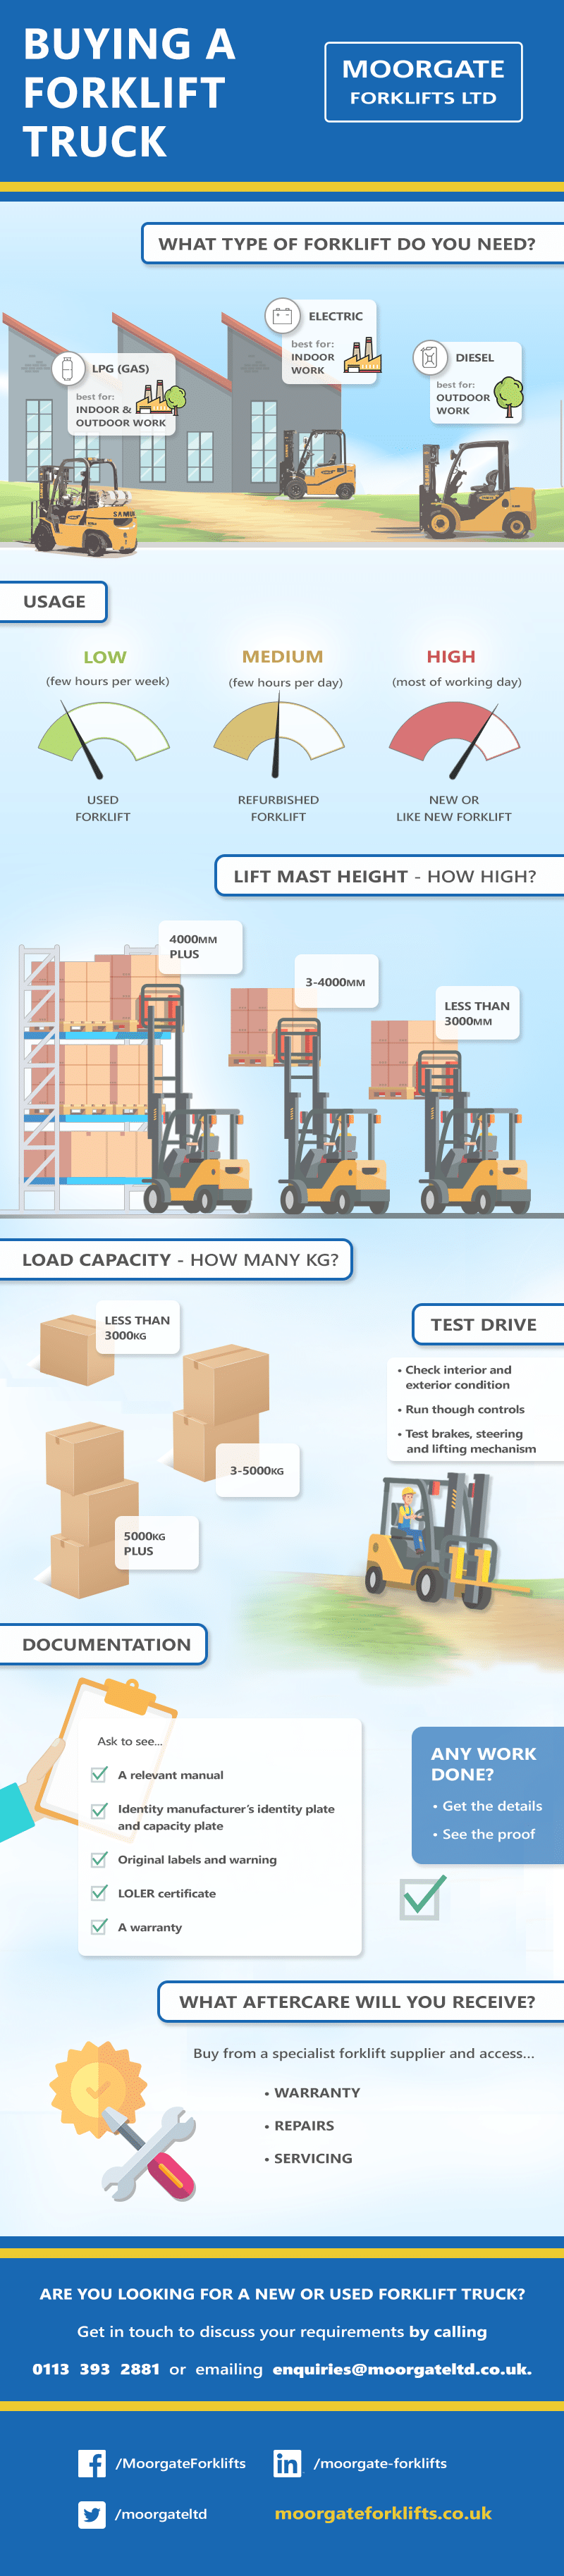 Moorgate-infographic-Buying-a-forklift